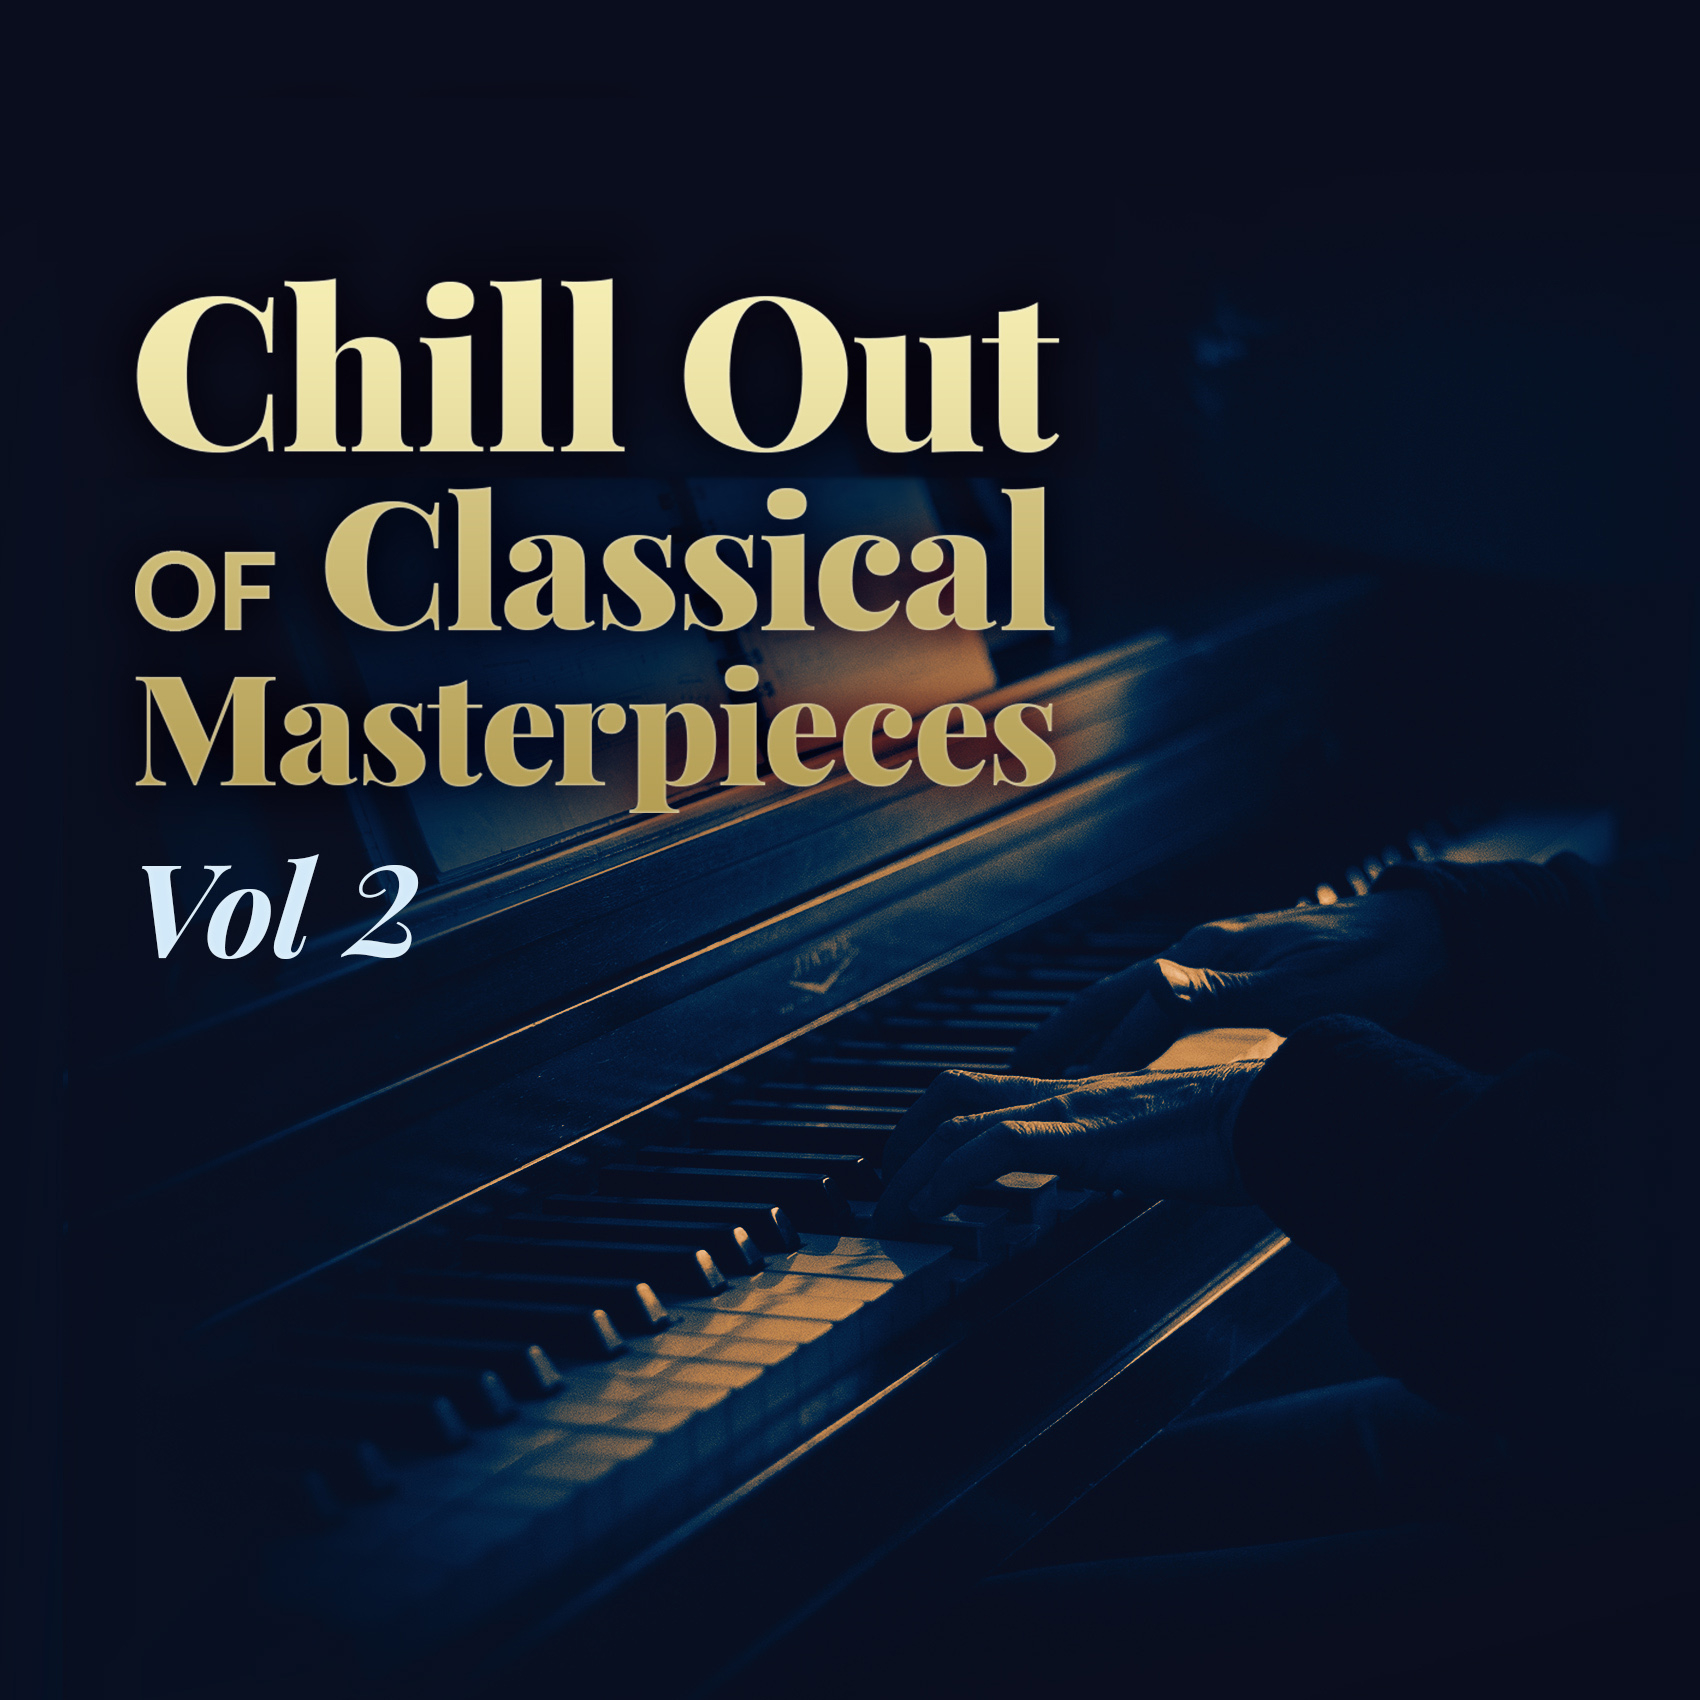 Chill Out of Classical Masterpieces Vol 2